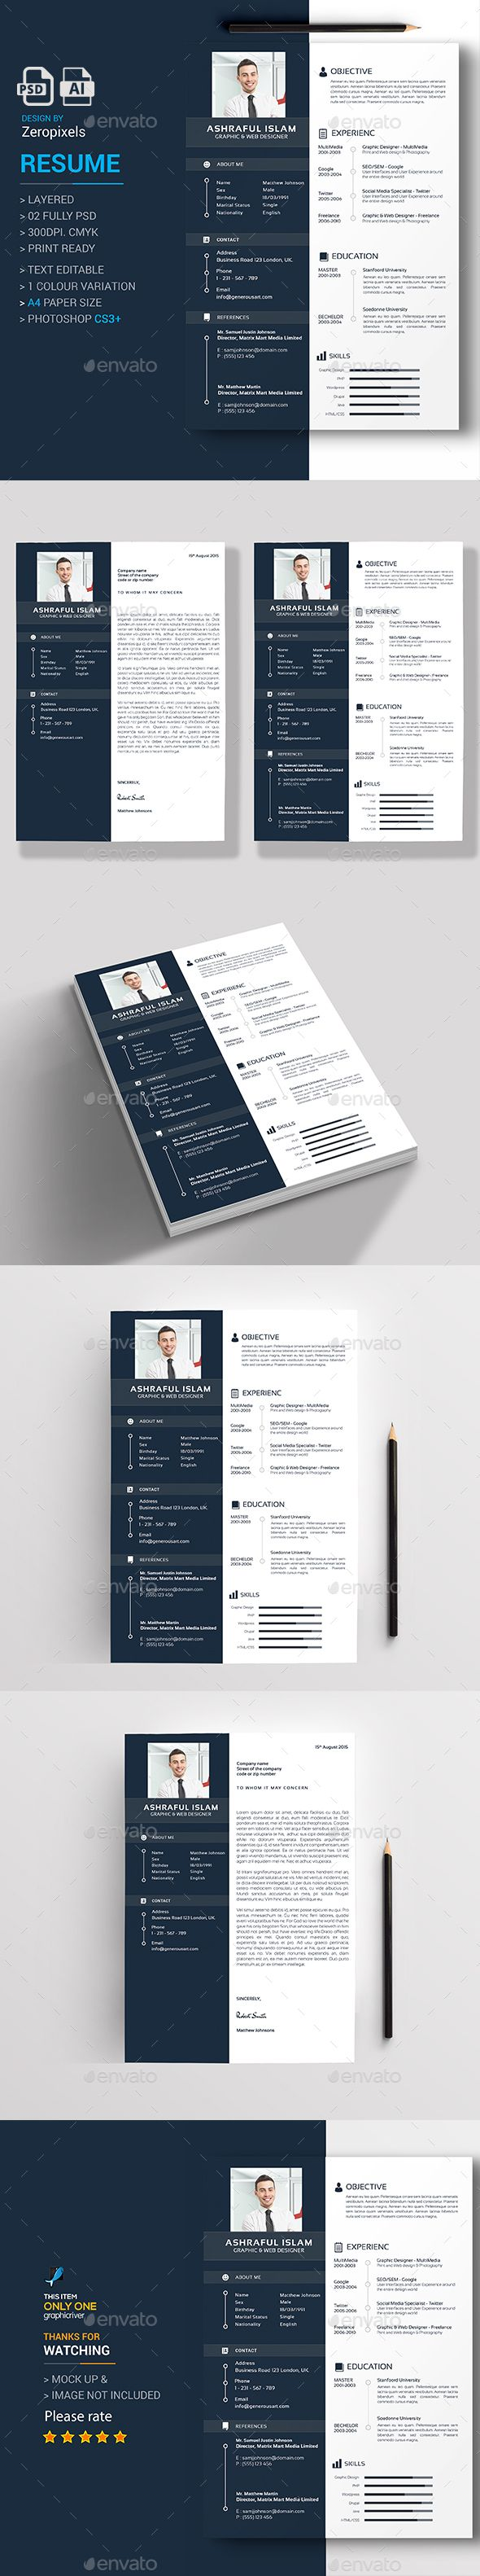 57 best Hot CV Designs images on Pinterest | Hot, Design resume ...